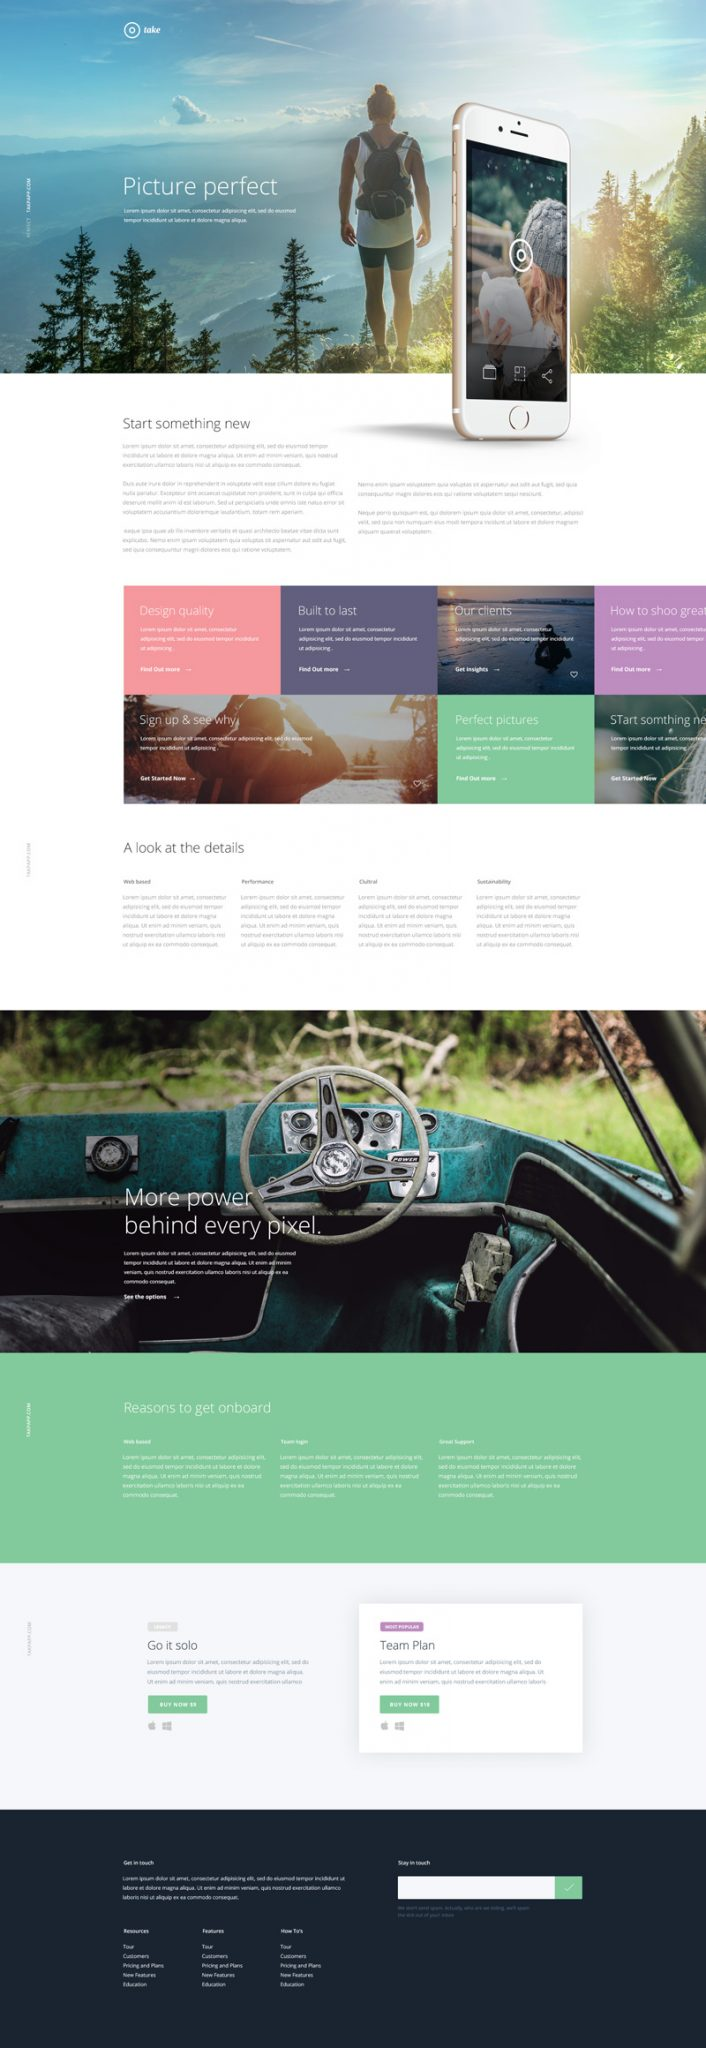 Take Free Mobile App Landing Page PSD template